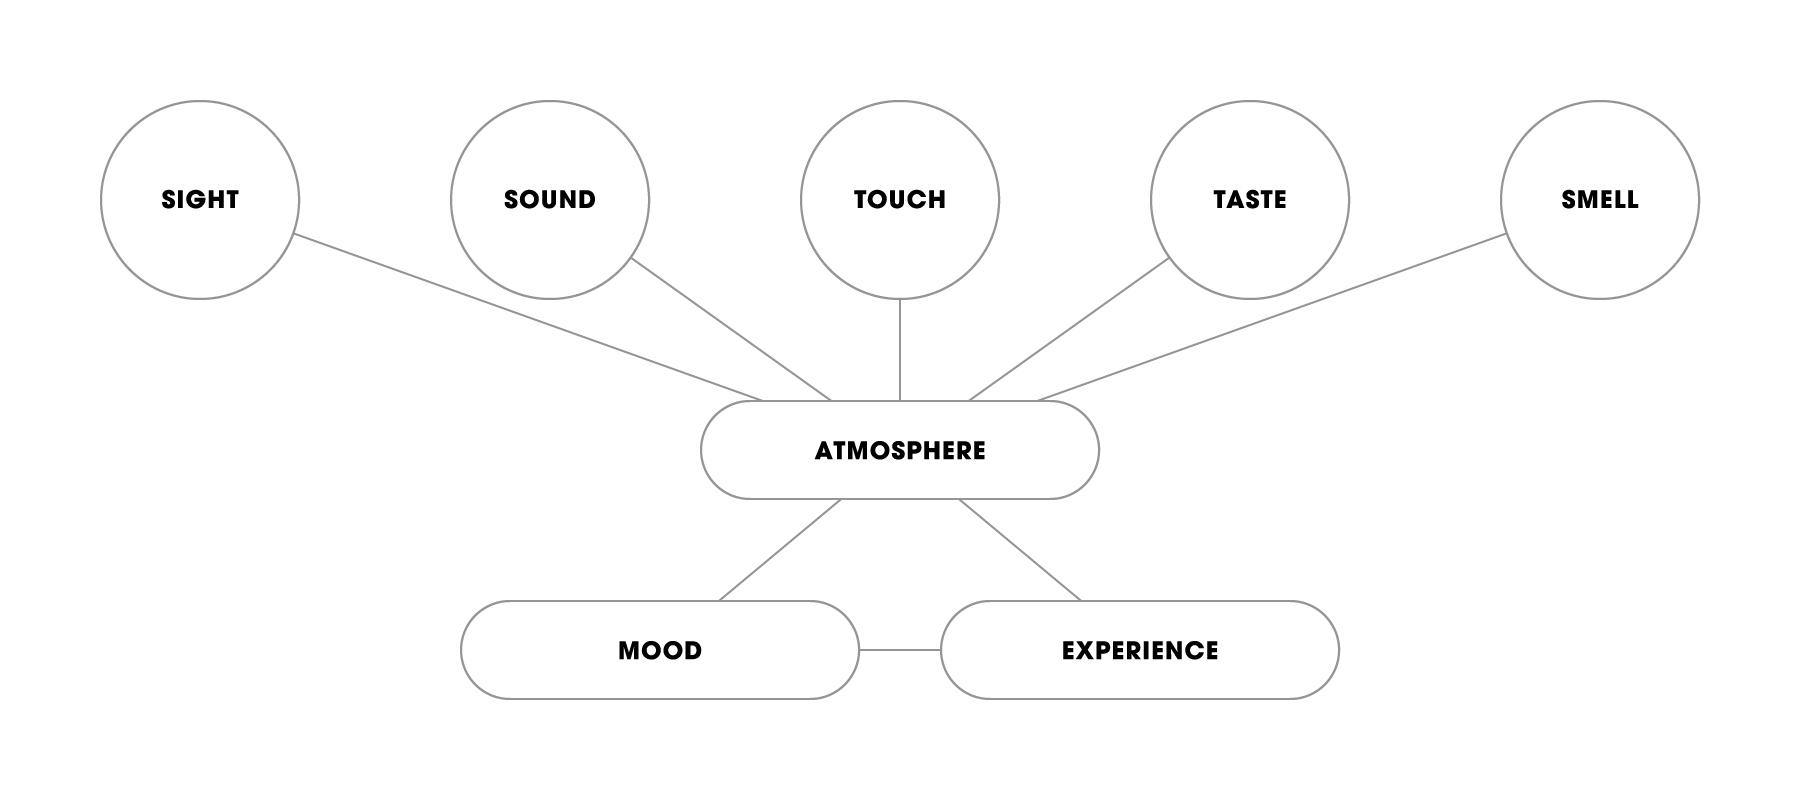 Sense map used to describe part of inspiration process